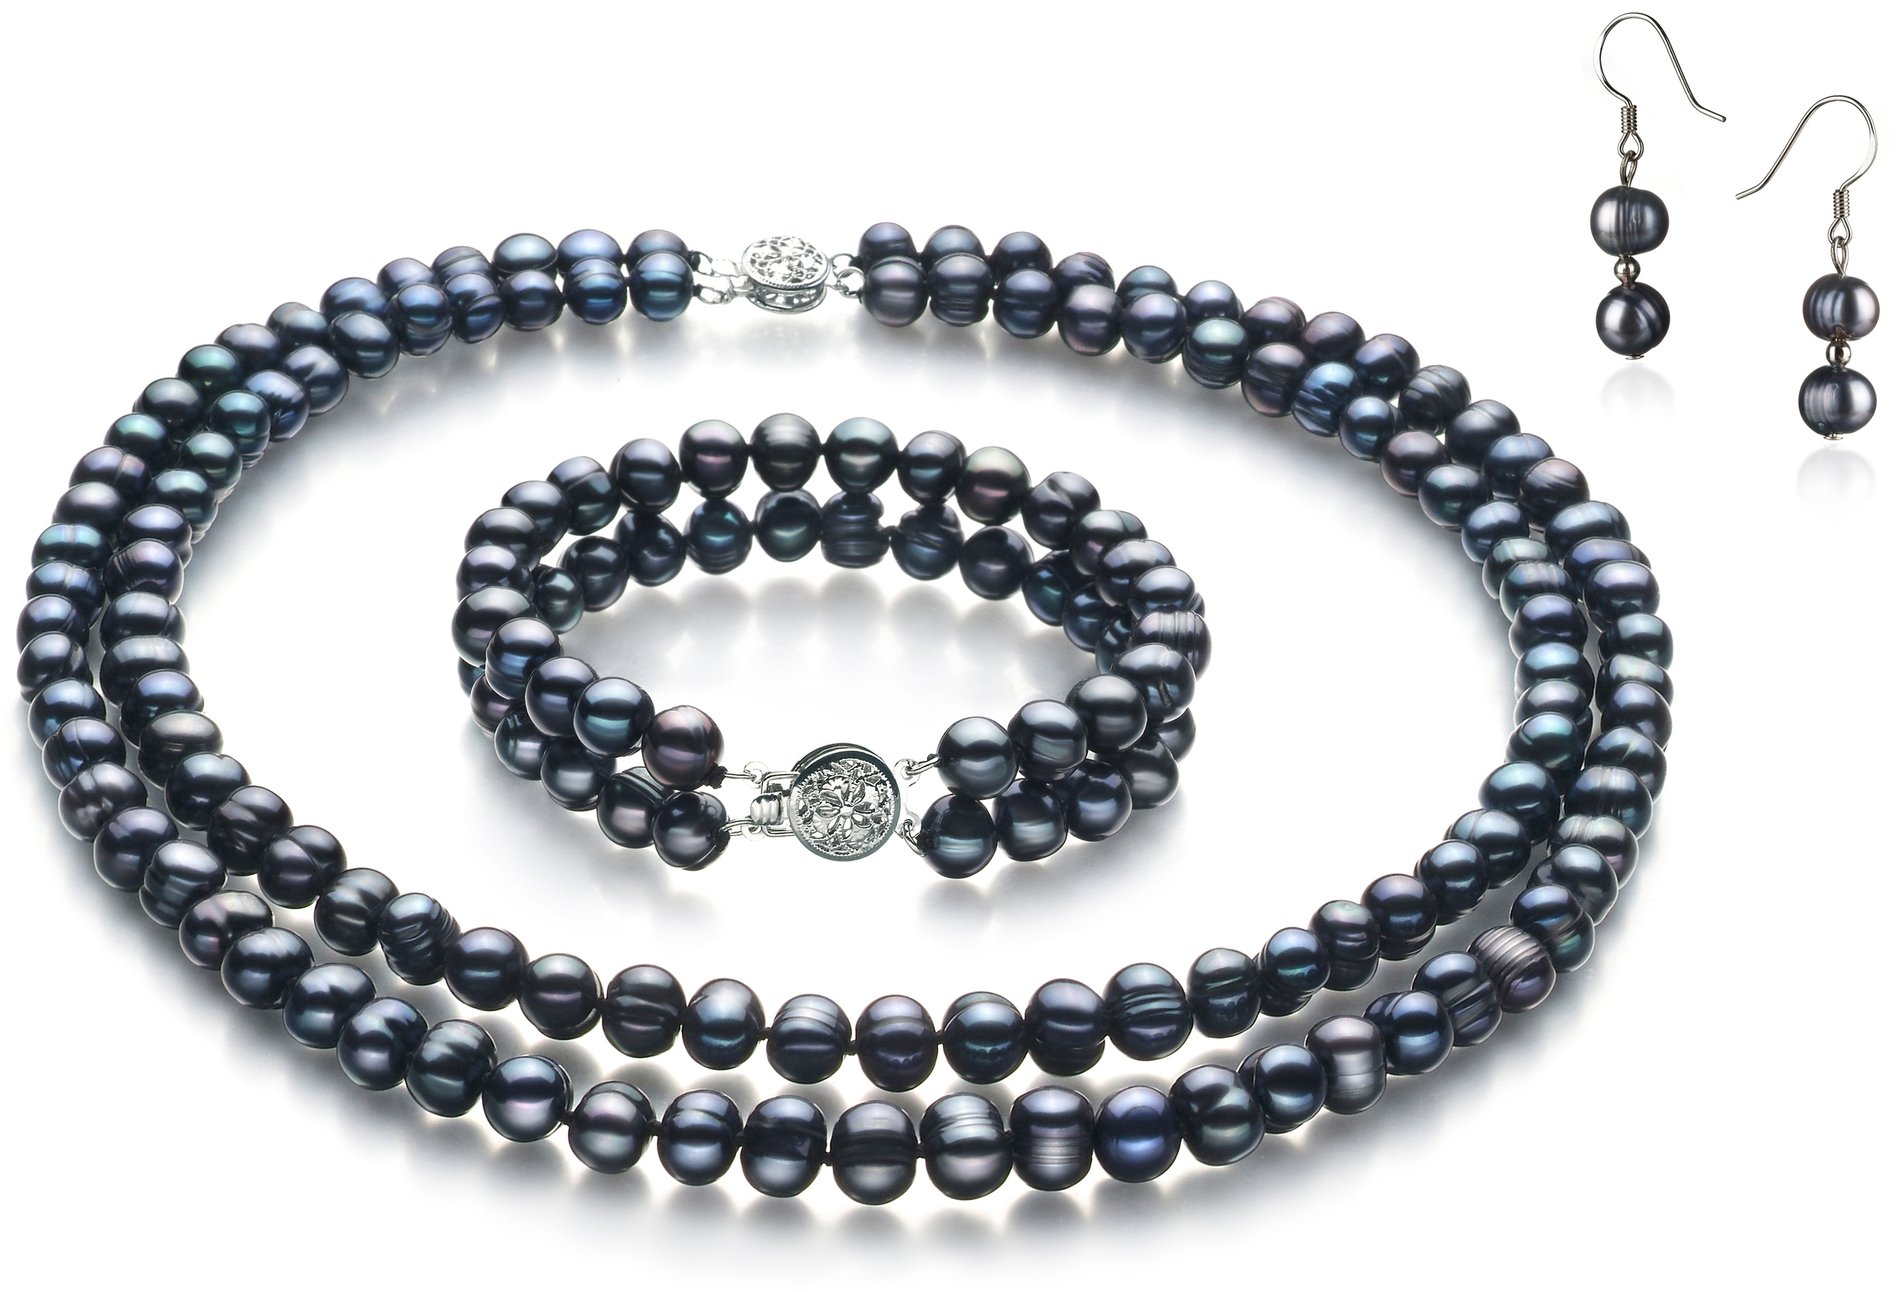 PearlsOnly Julika Black 6-7mm Double Strand A Quality Freshwater Cultured Pearl Set-18 in Princess length